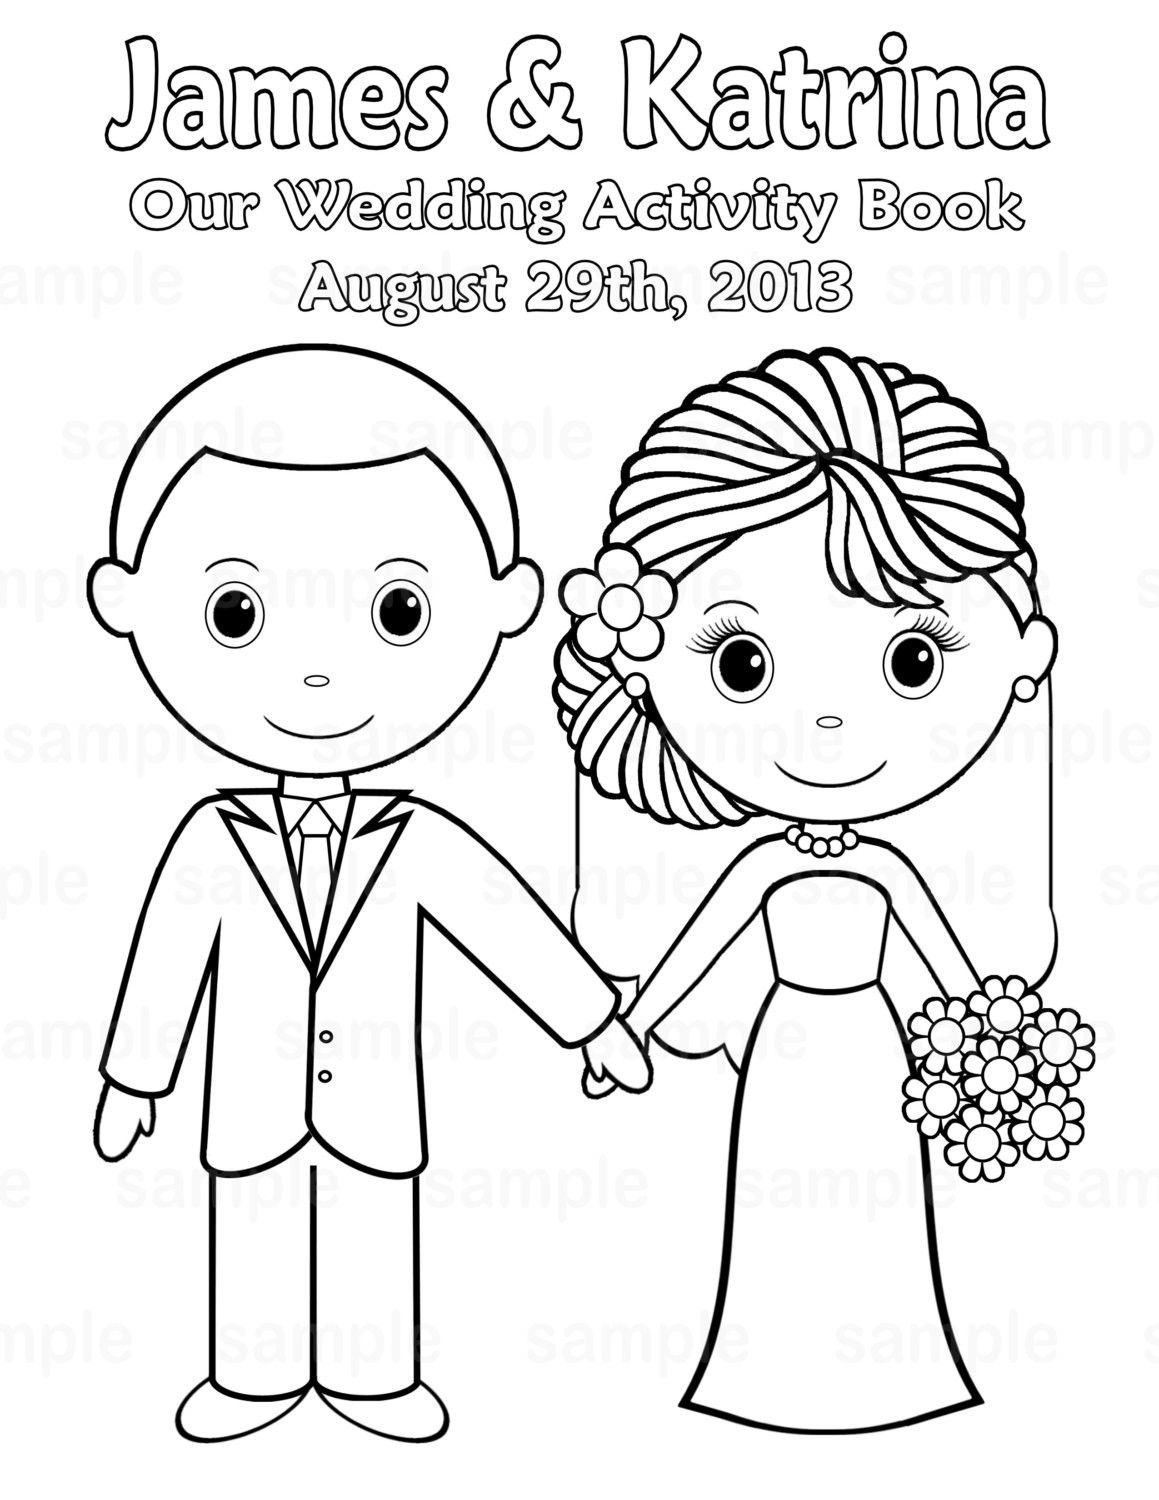 free printable wedding coloring pages free printable wedding coloring book for kids free download - Children Drawing Book Free Download